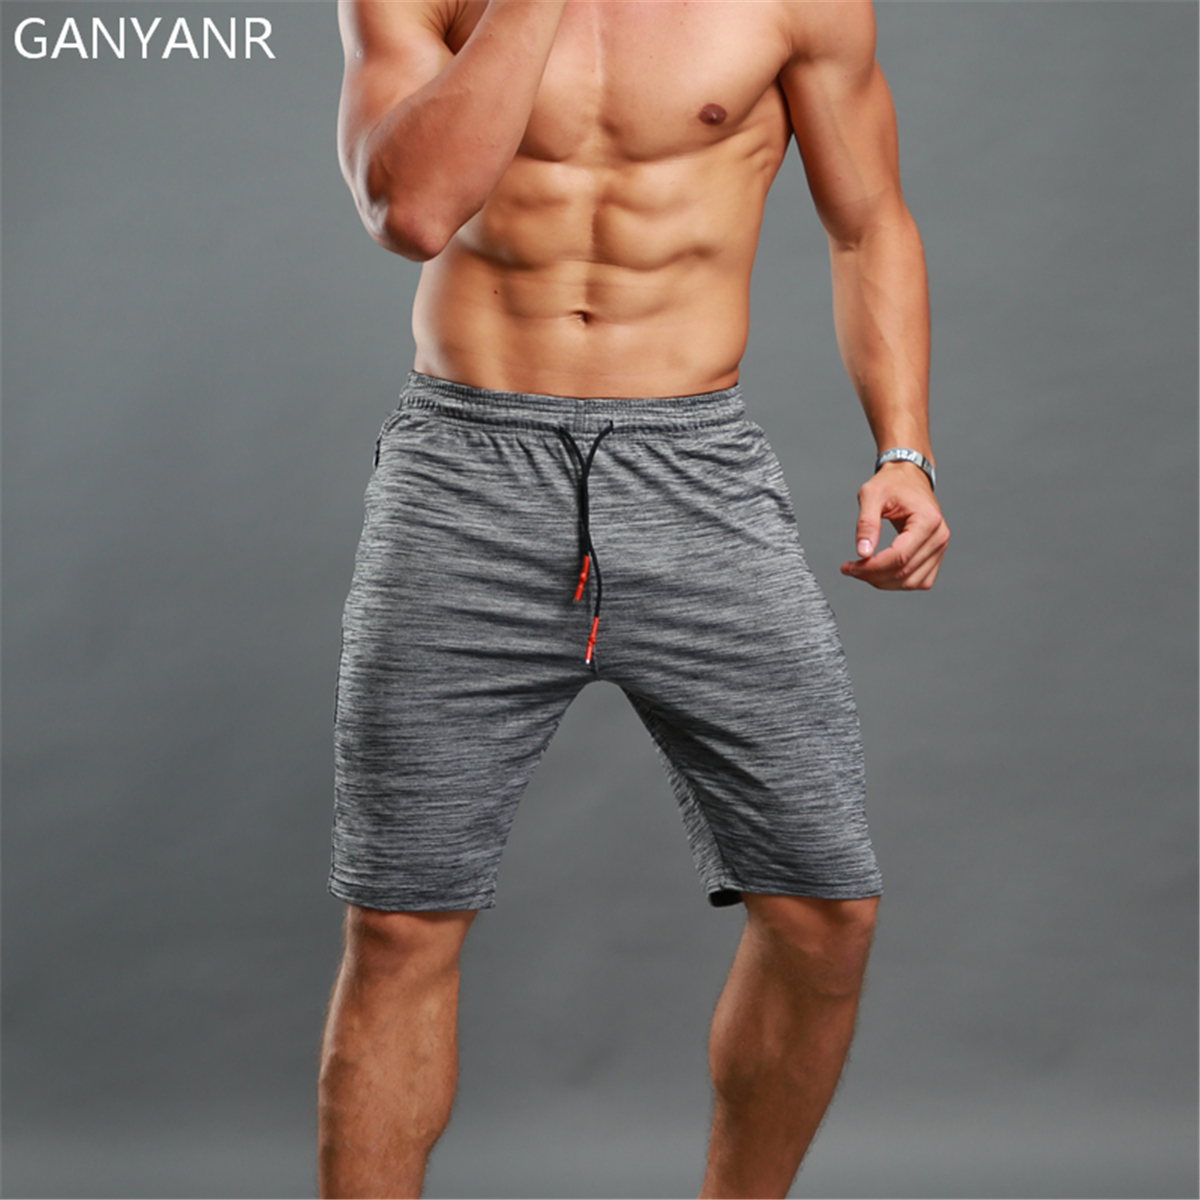 GANYANR Brand Running Shorts Men Basketball Gym Sport Short Pants Athletic Tennis Volleyball Crossfit Training Soccer Football